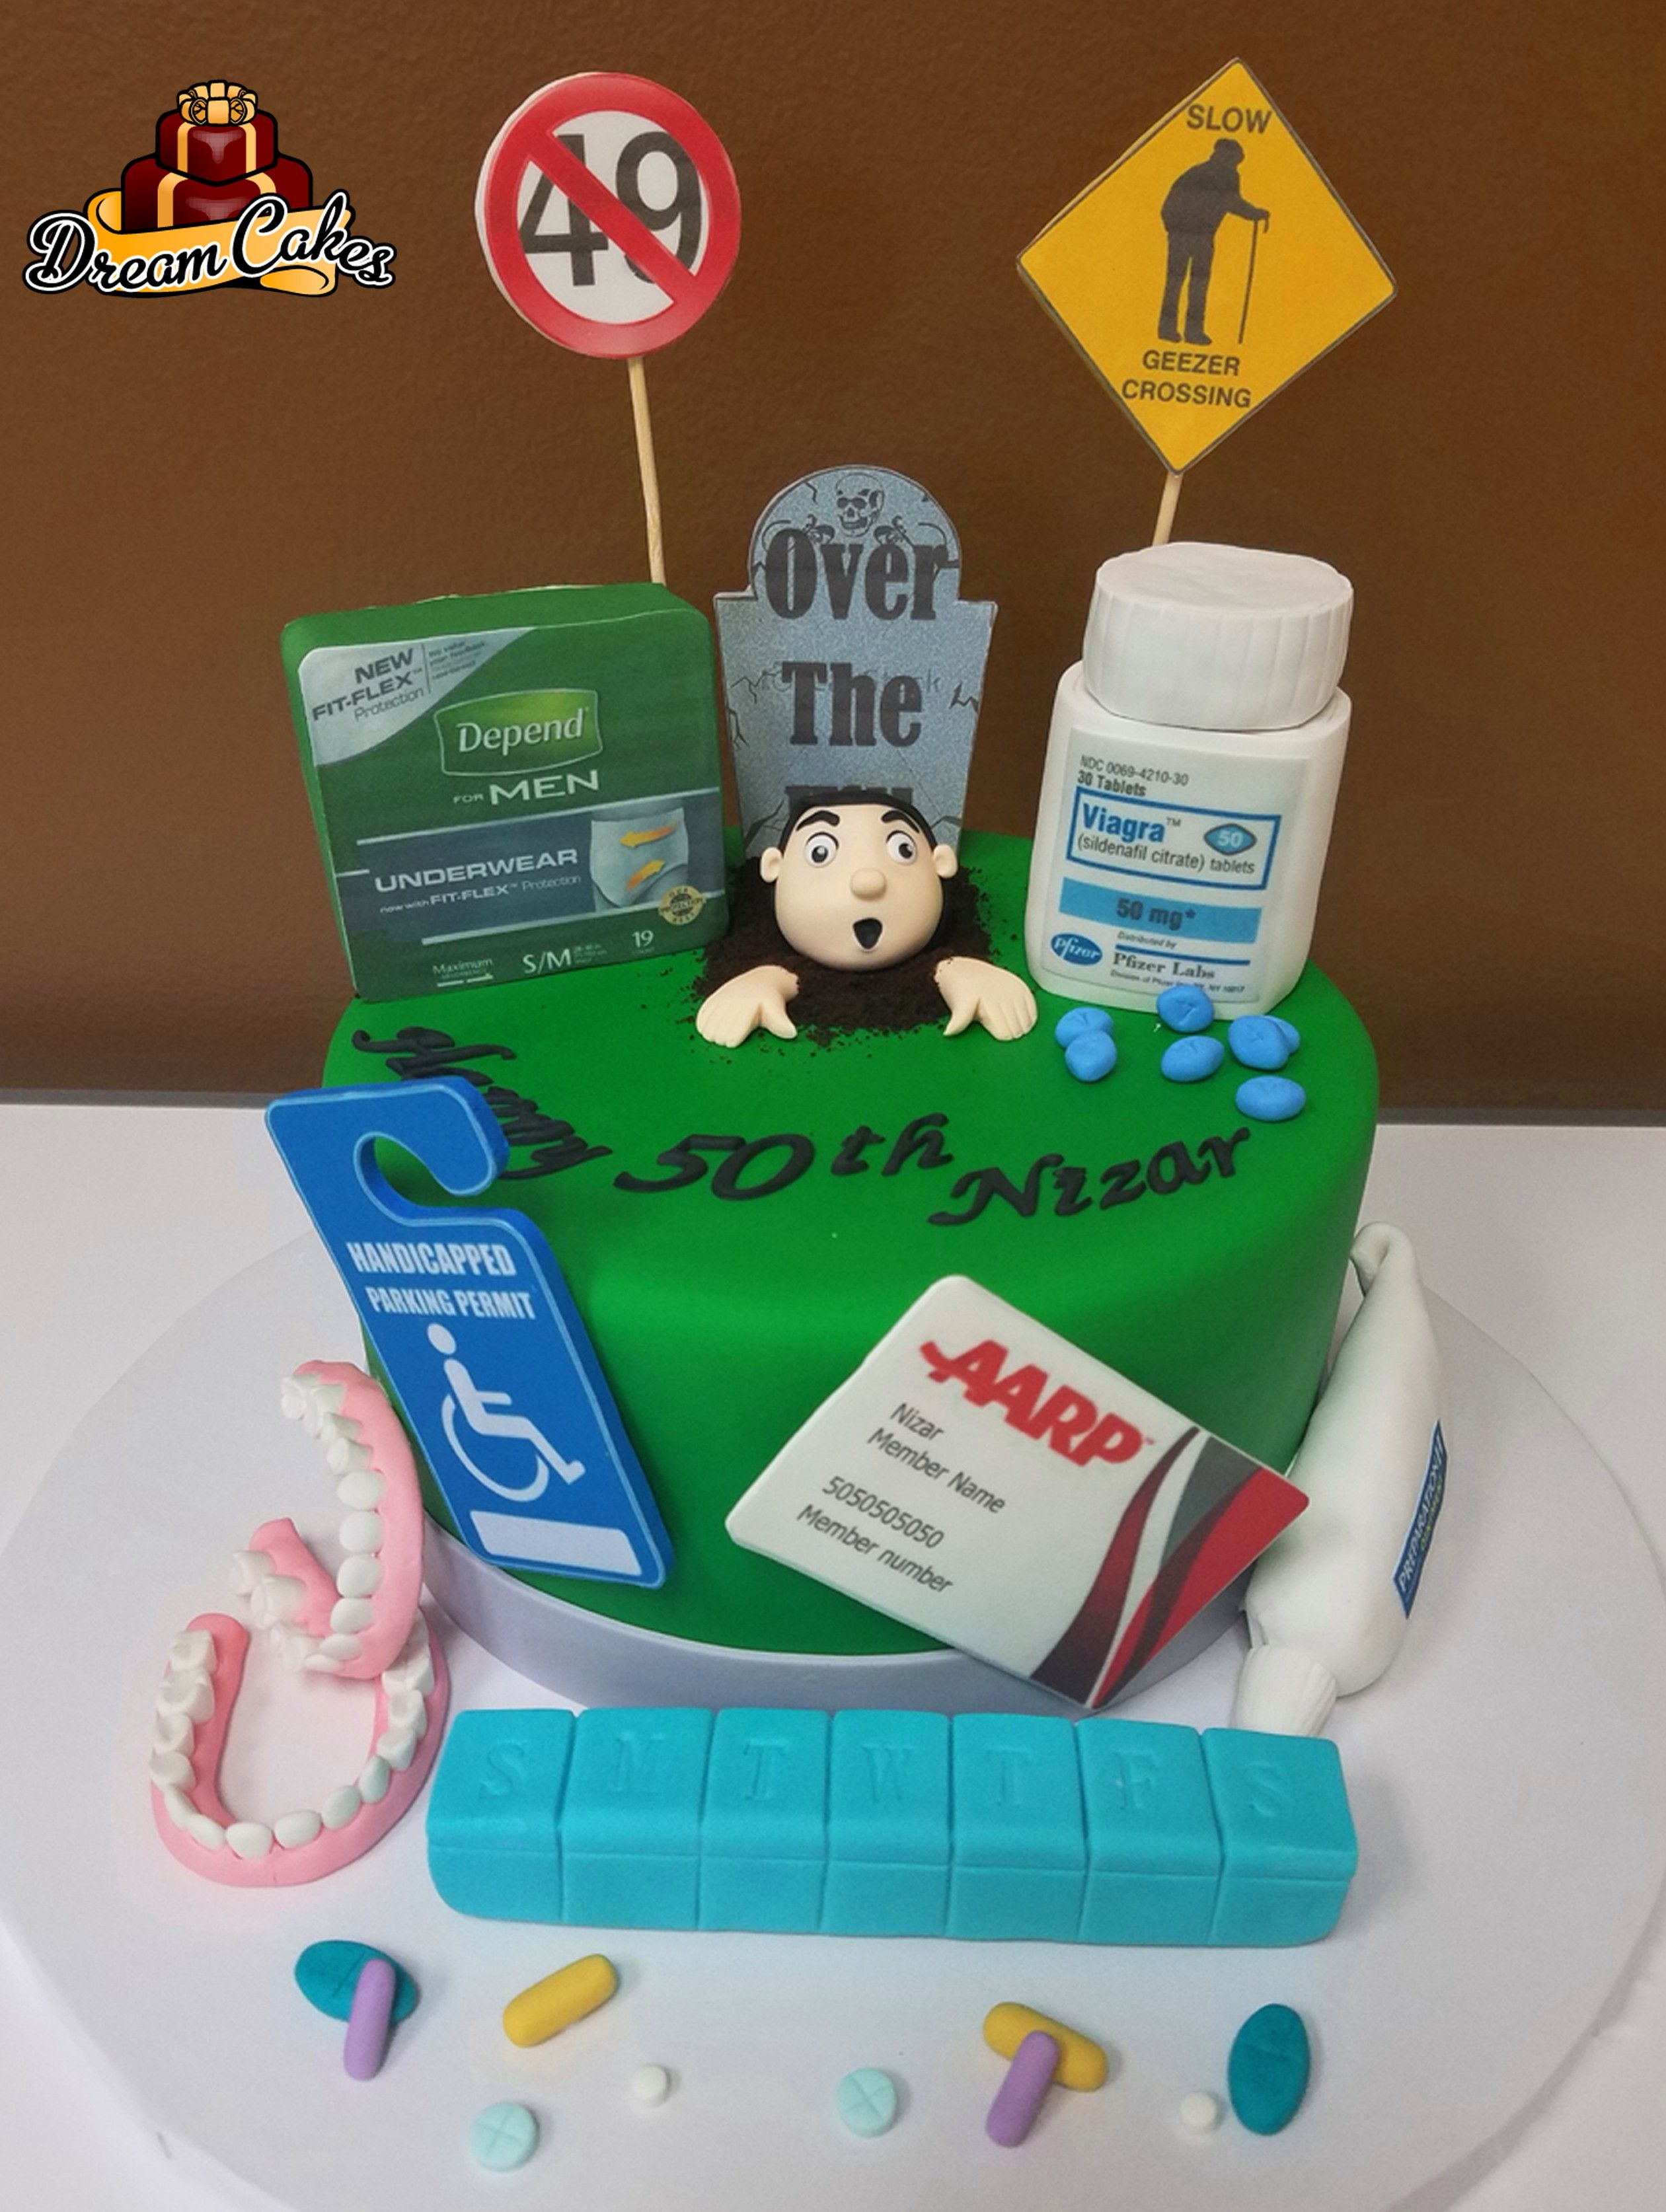 Over The Hill Cake By Dream Cakes Chicago With Images Funny